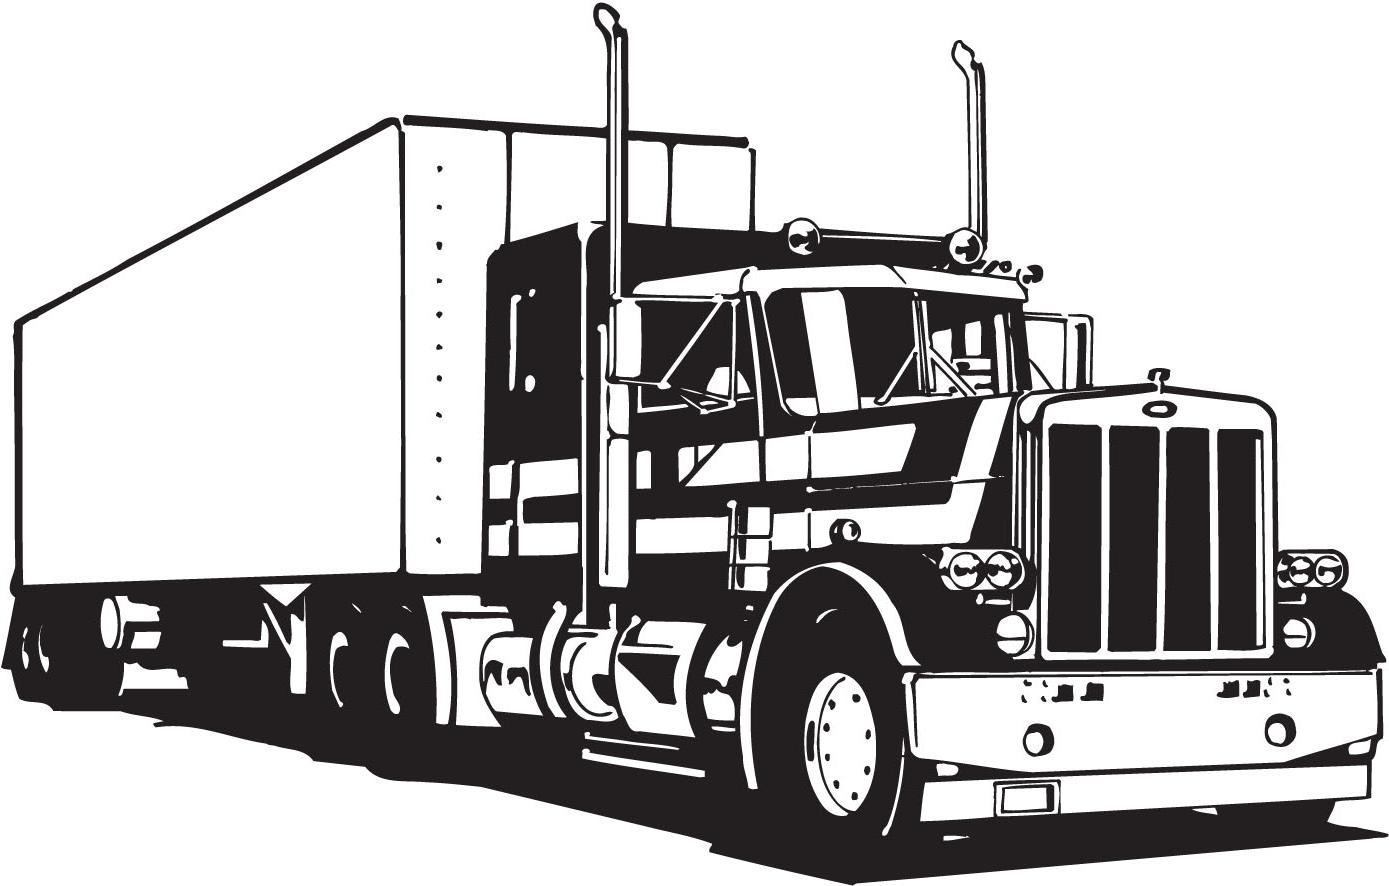 1389x886 Top Tractor Trailer Clip Art Image Free Vector Art, Images